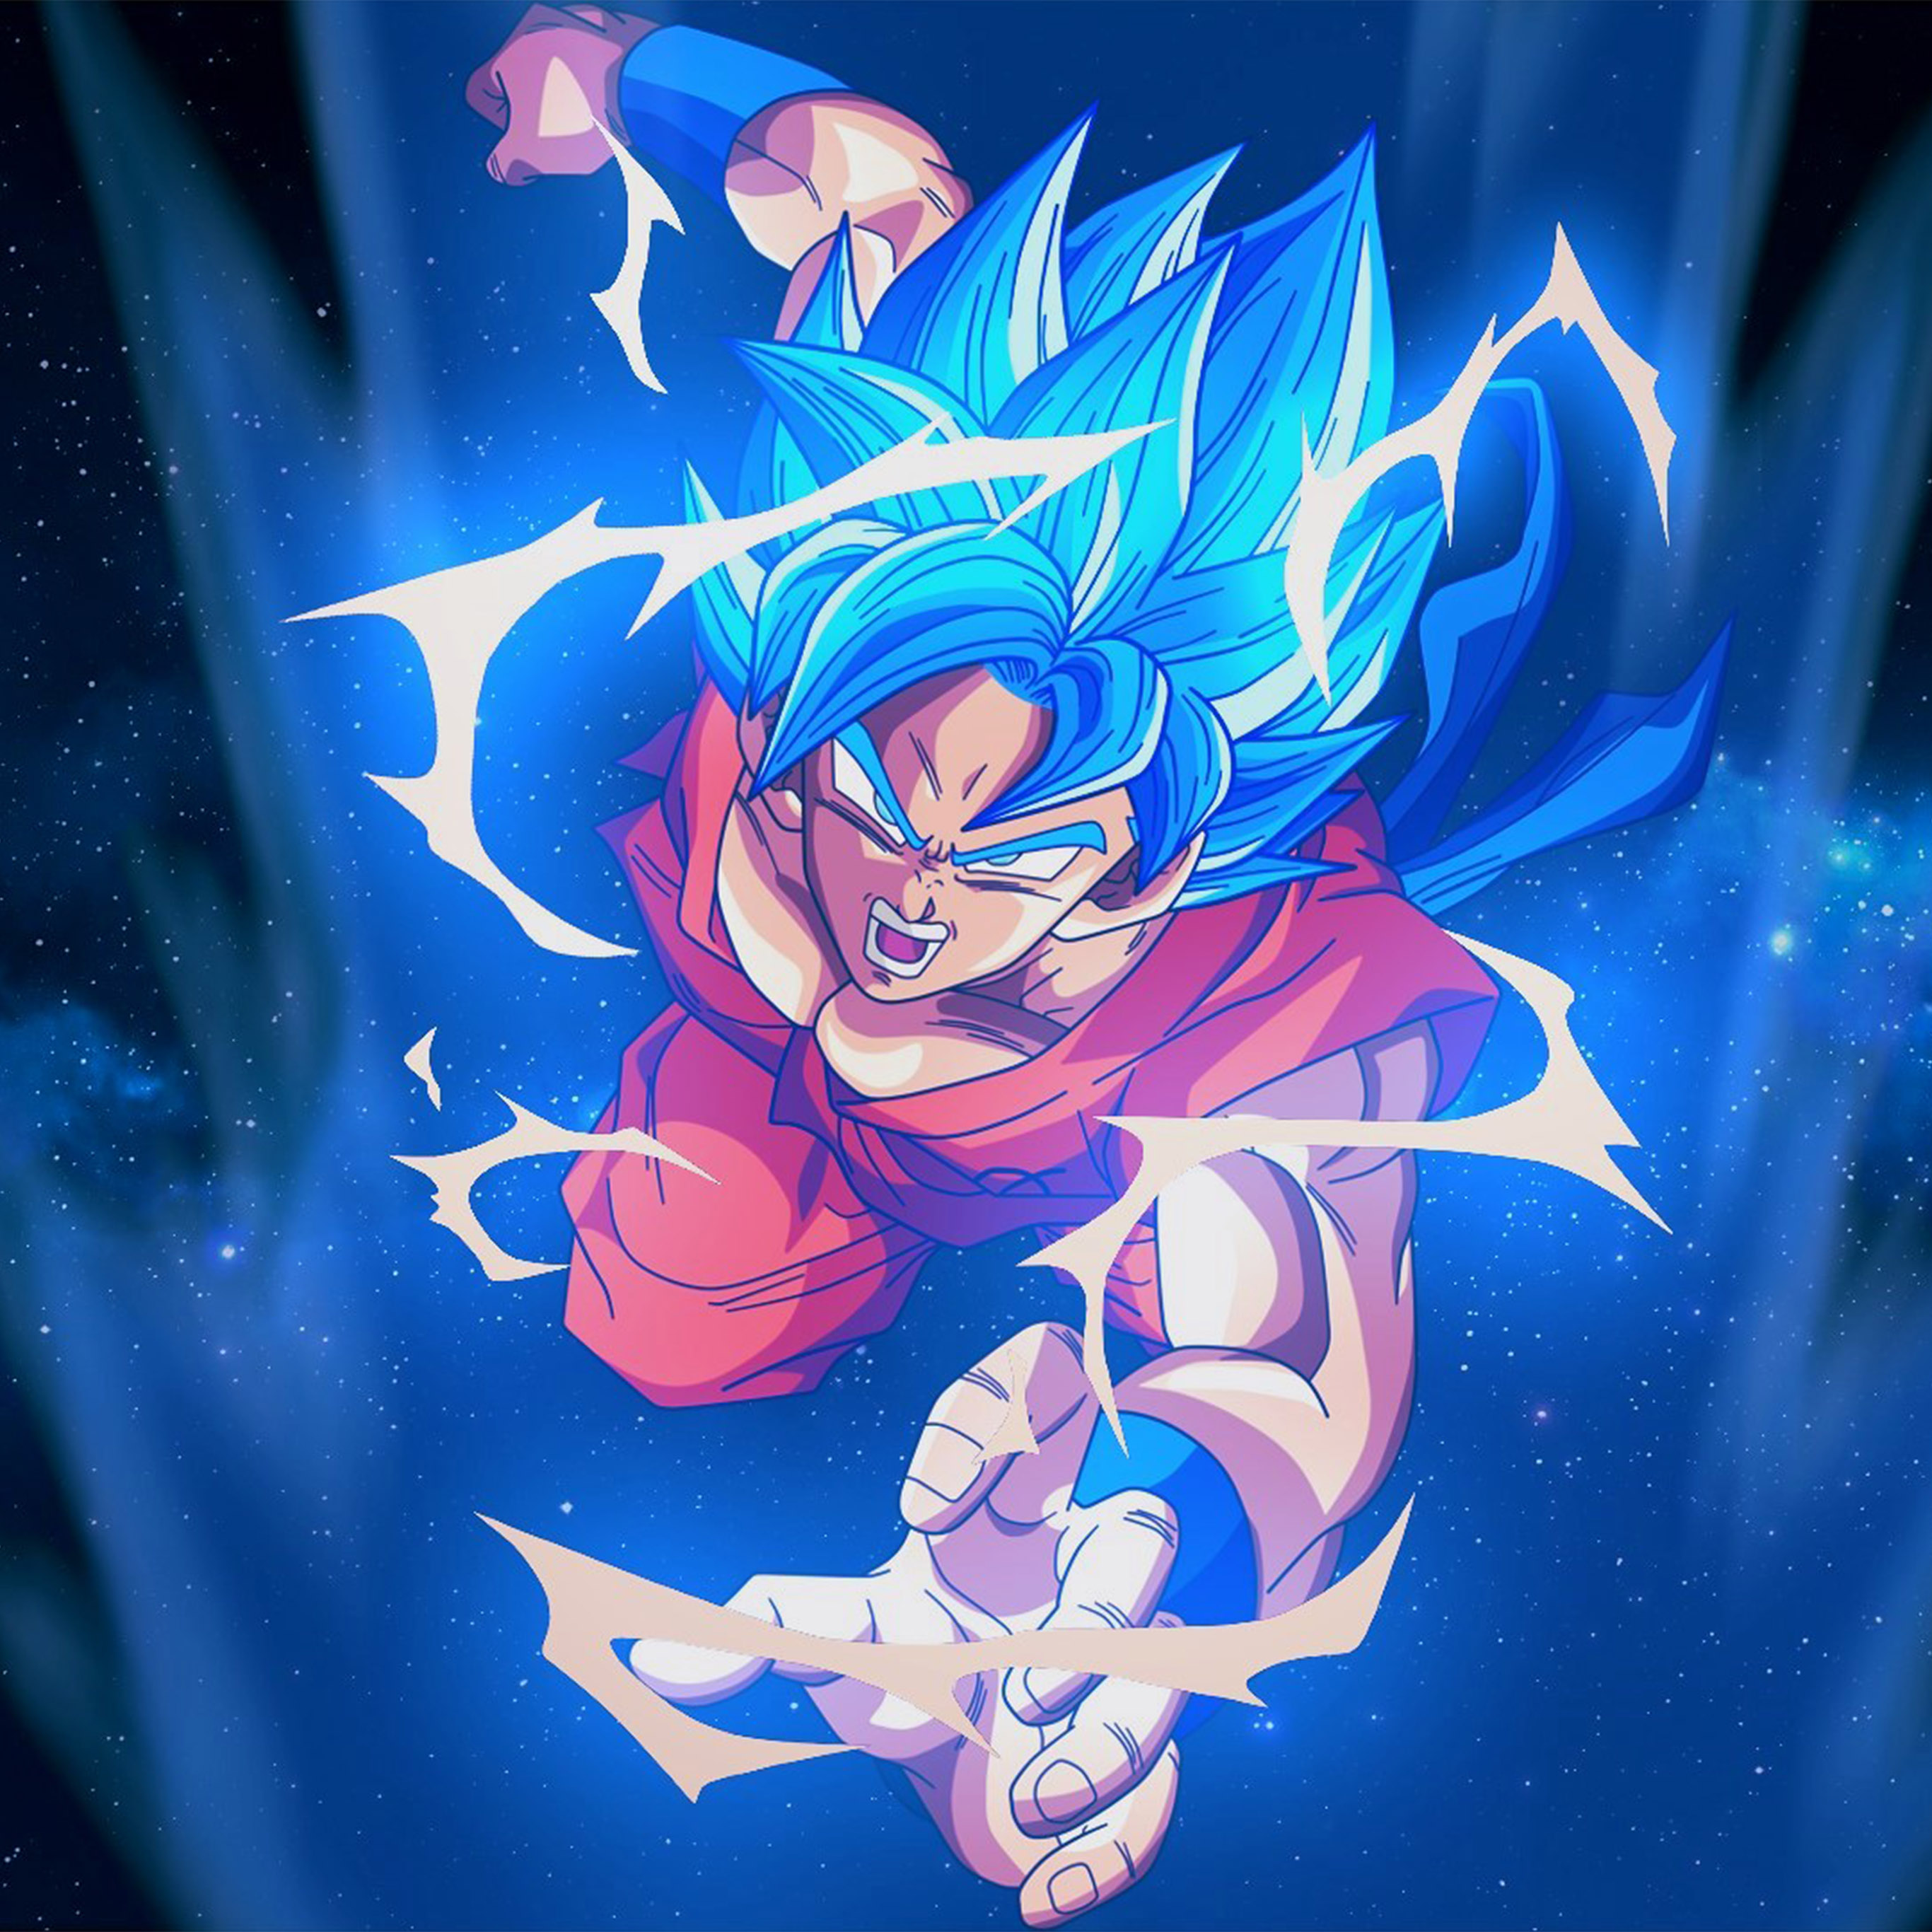 Manga Wallpaper: Bc54-dragonball-goku-blue-art-illustration-anime-wallpaper